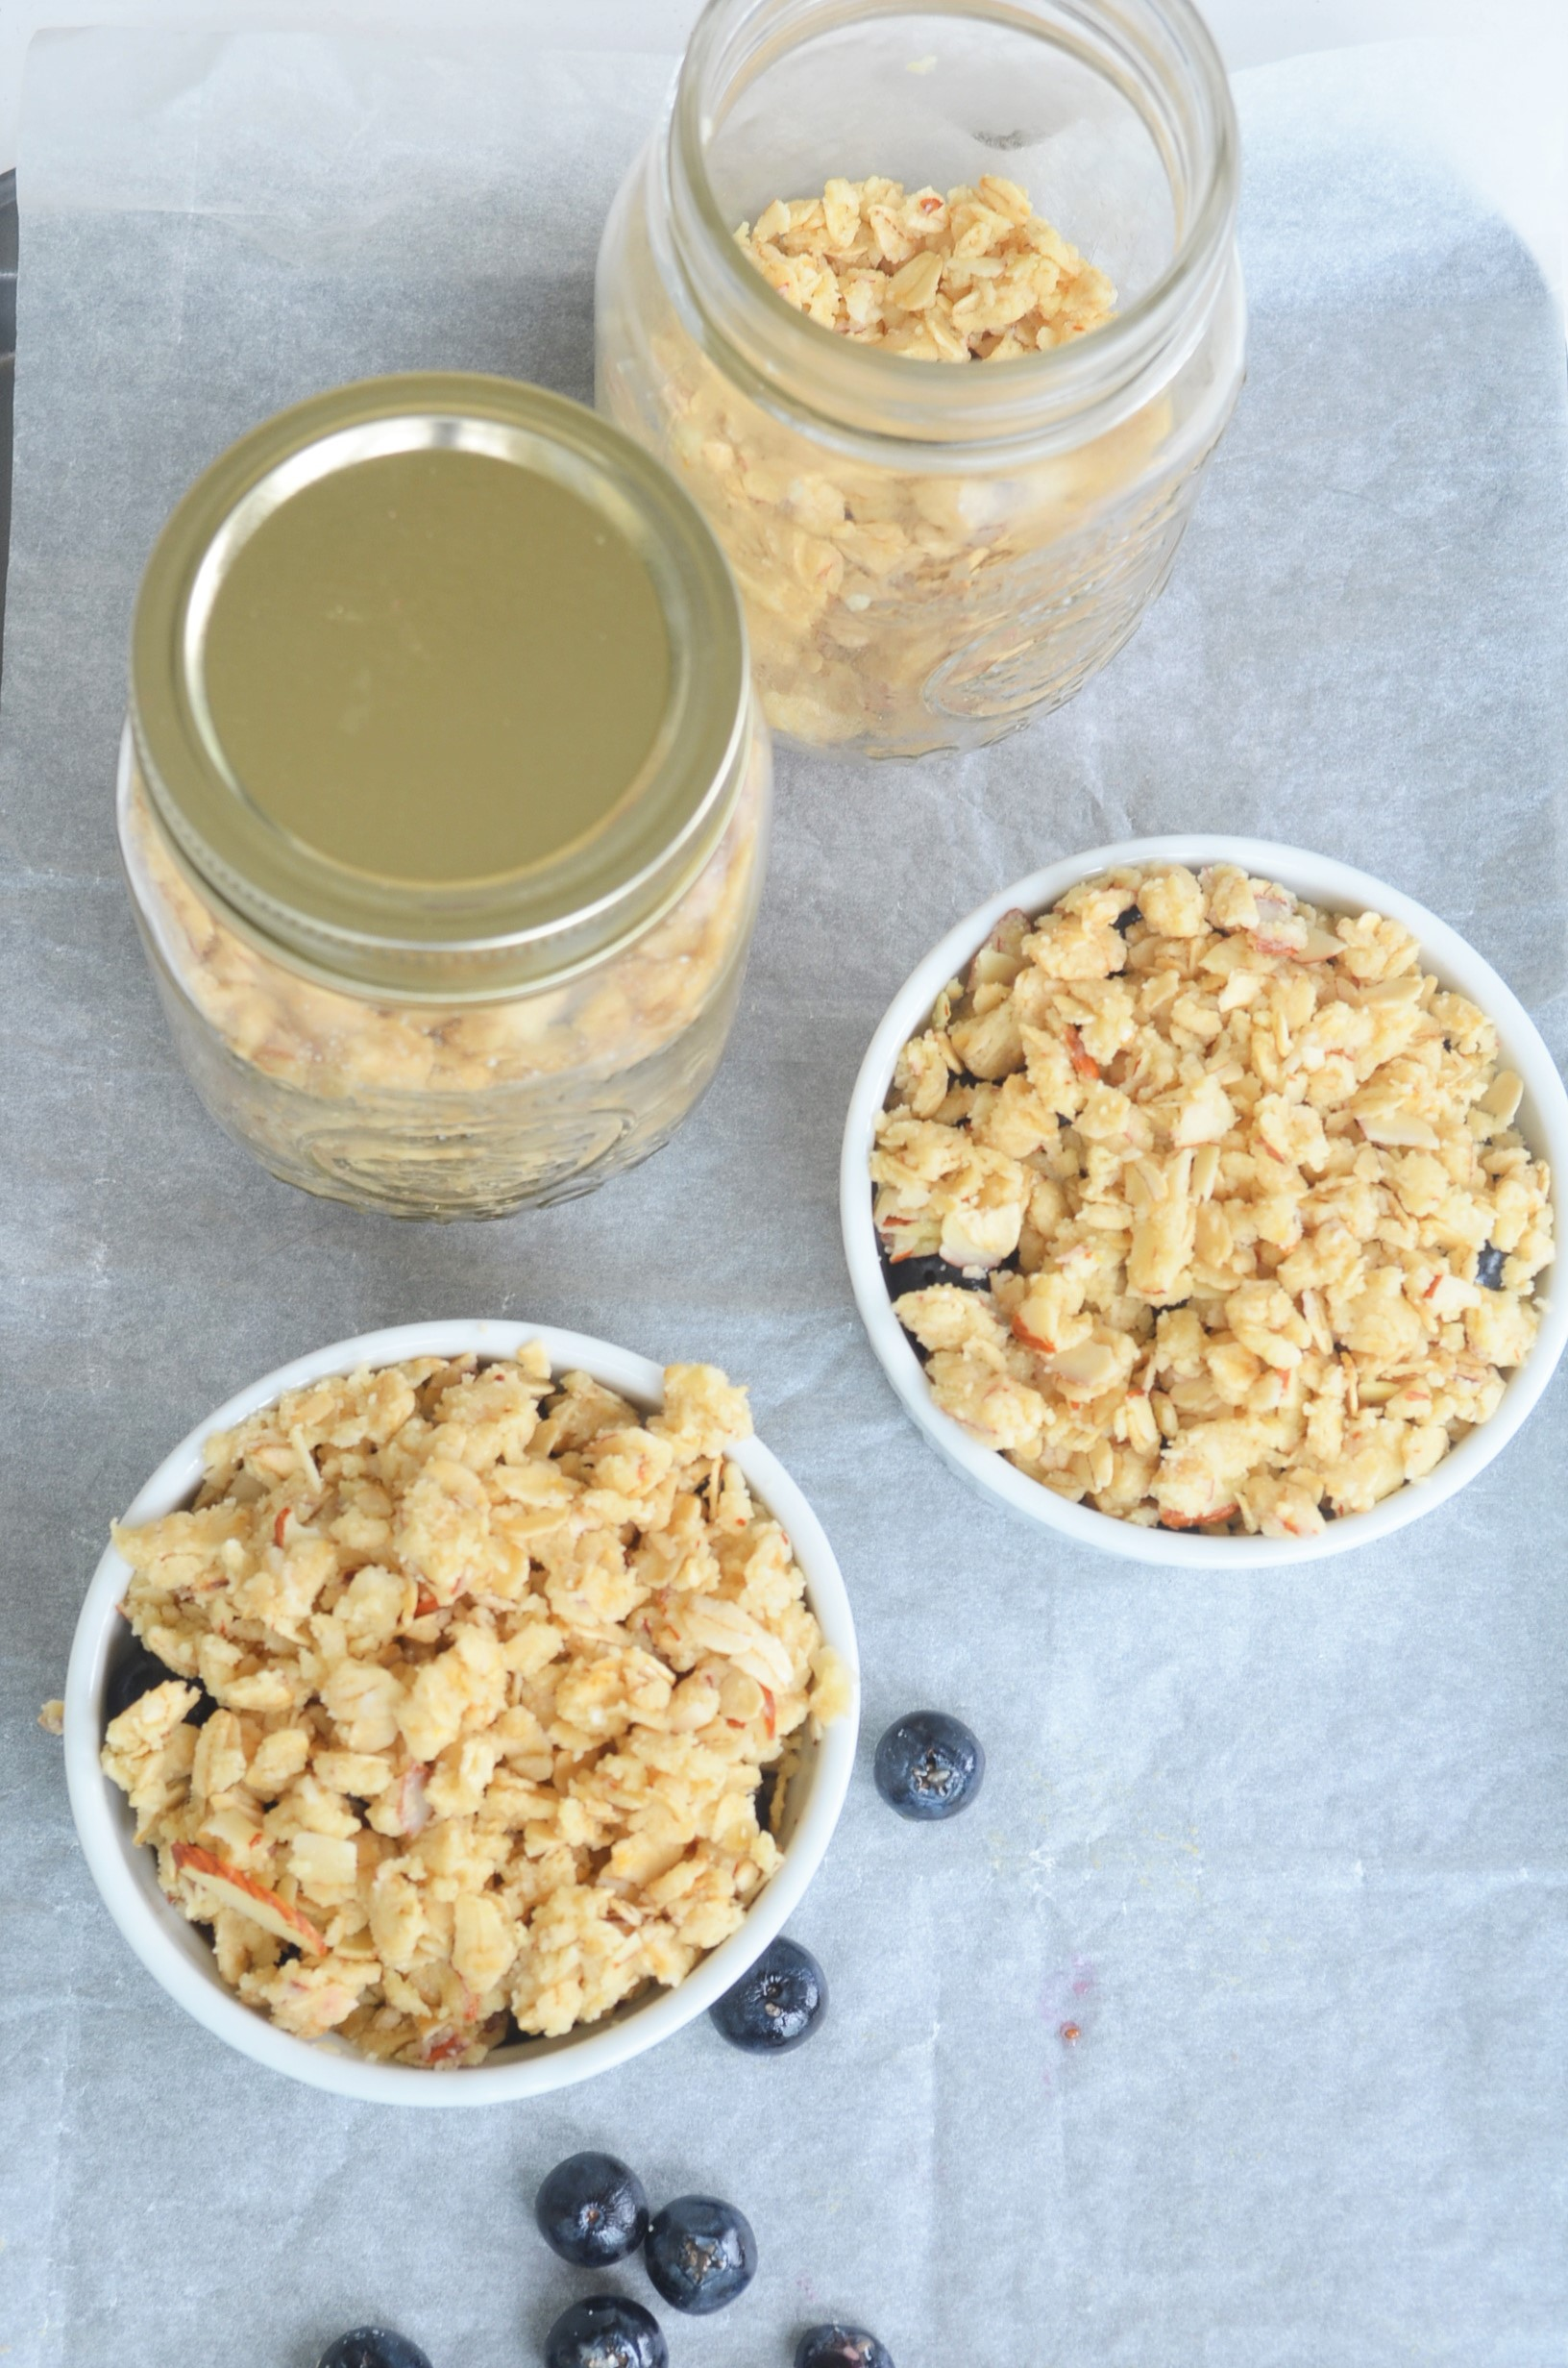 Make-Ahead Gluten Free and Vegan Crisp Topping